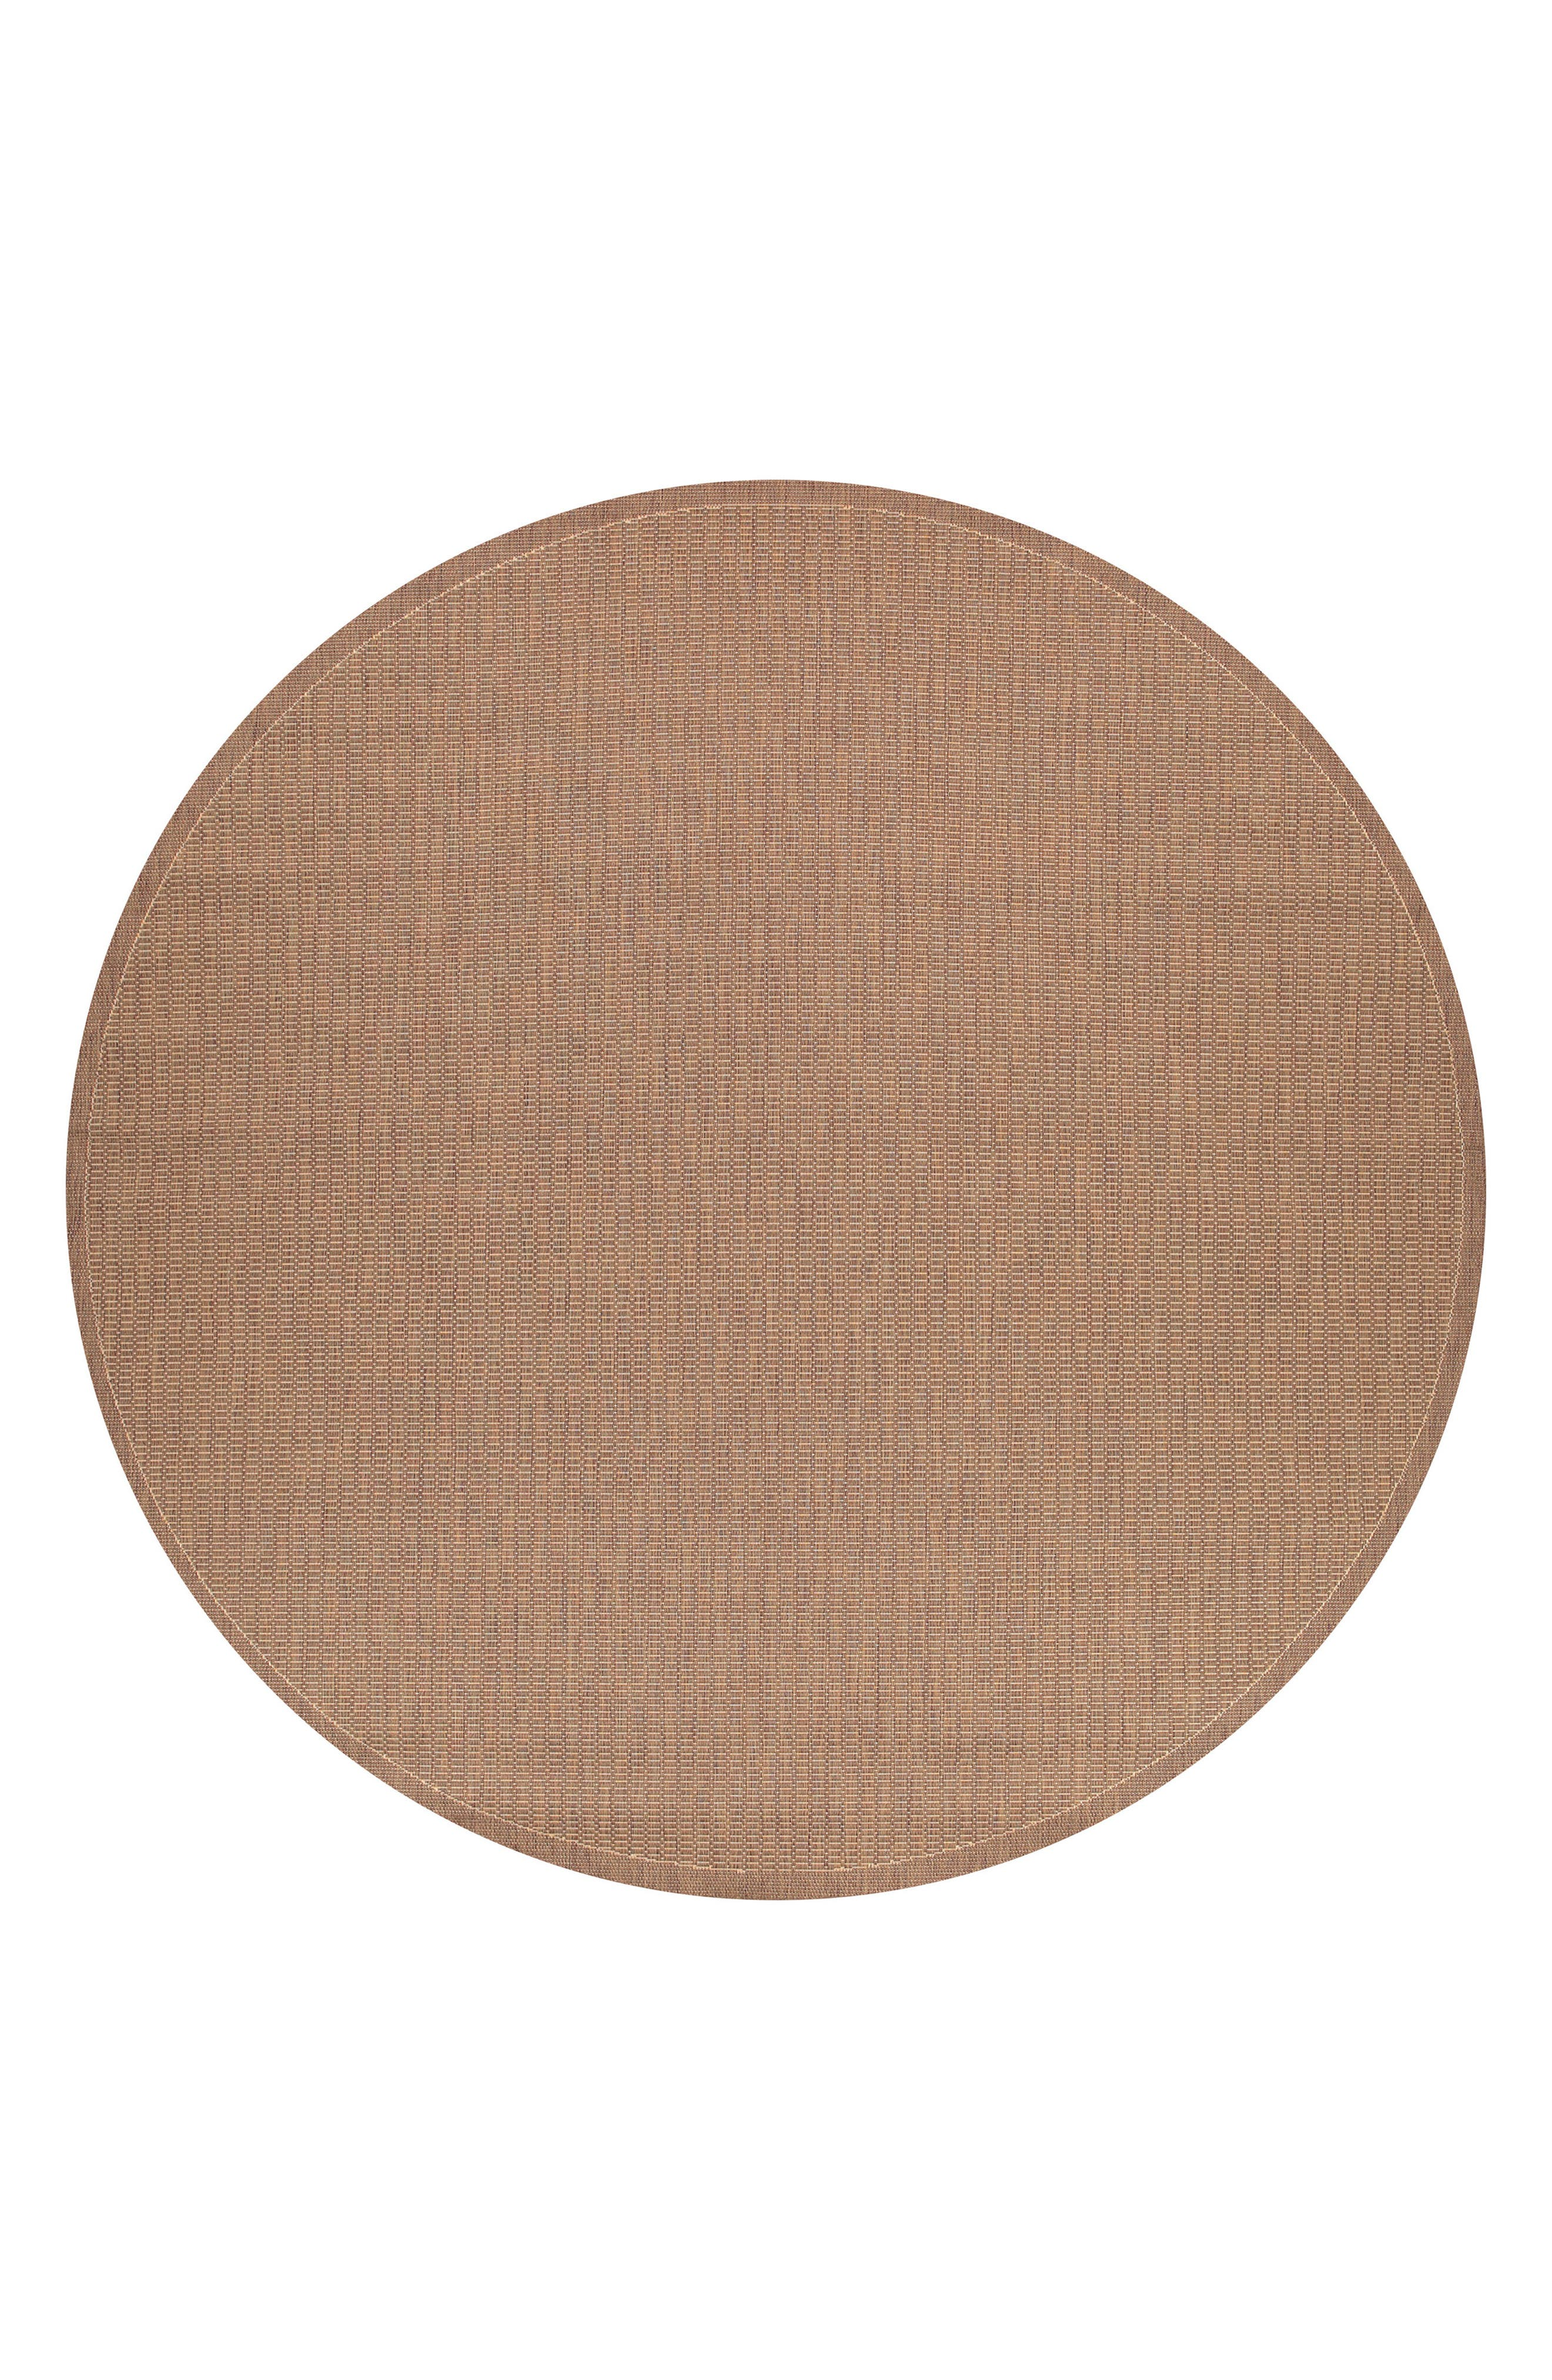 Saddle Stitch Indoor/Outdoor Rug,                             Main thumbnail 1, color,                             Cocoa/ Natural